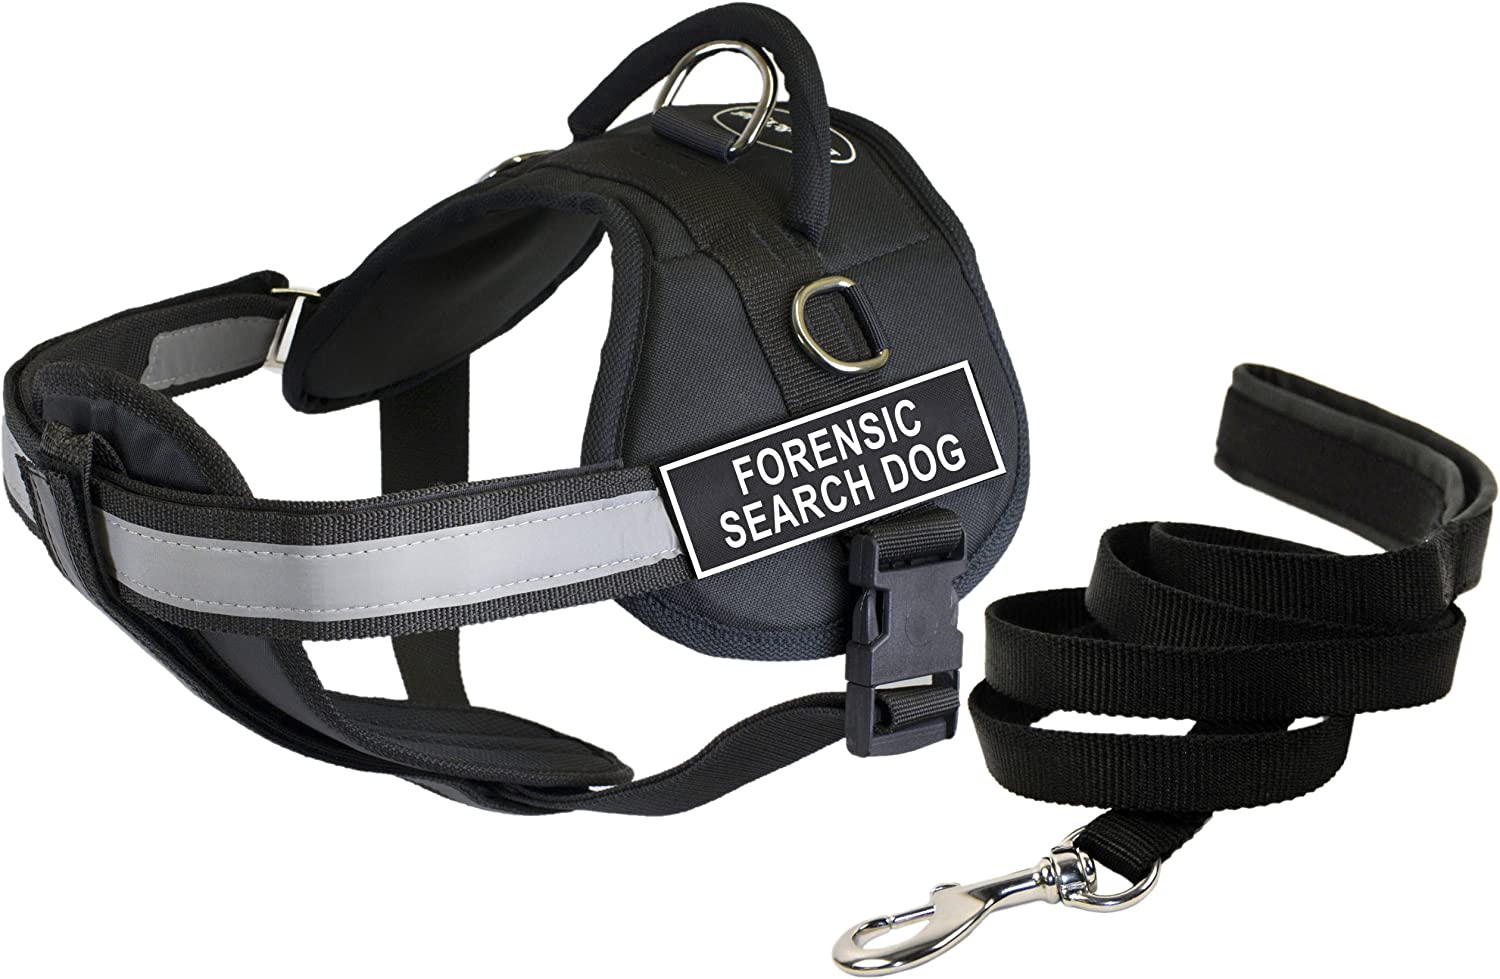 Dean & Tyler's DT Works FORENSIC SEARCH DOG Harness with Chest Padding, Small, and 6 ft Padded Puppy Leash.